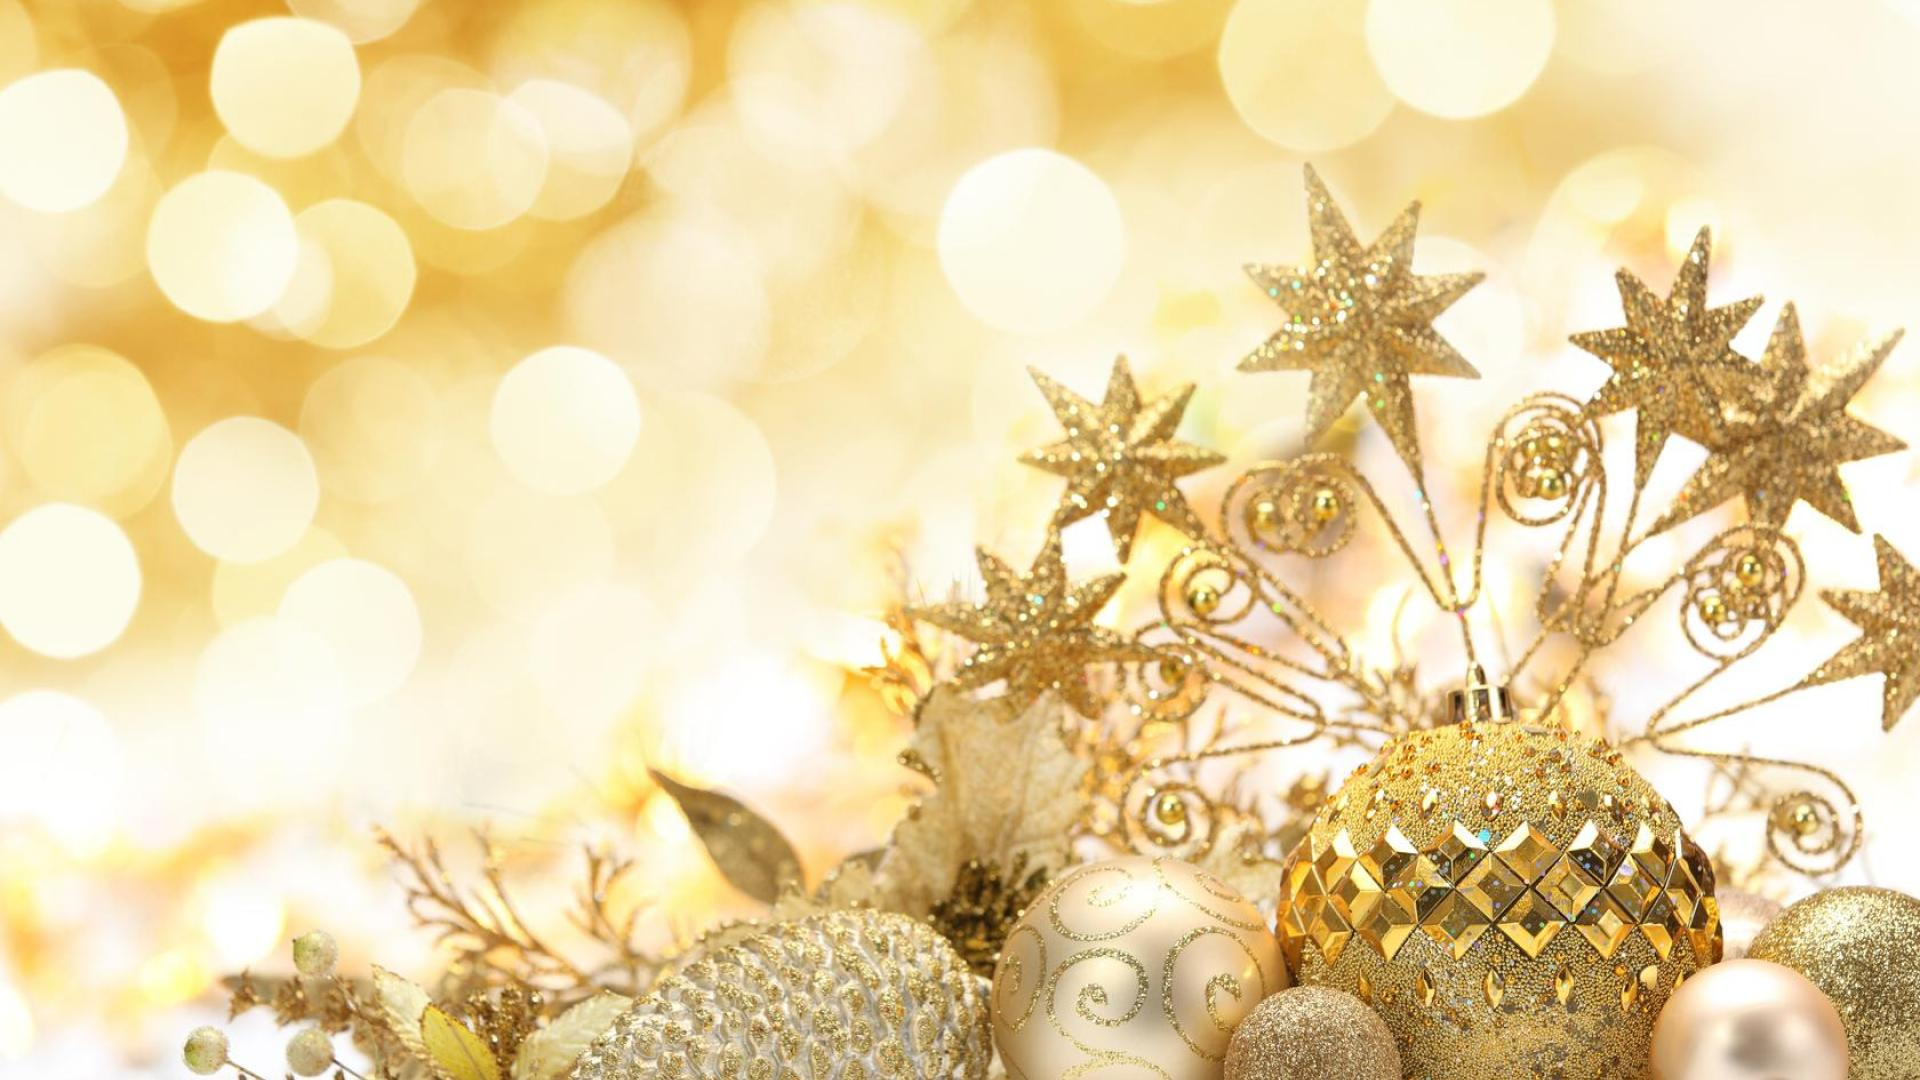 Christmas Wallpapers Black - Gold Christmas , HD Wallpaper & Backgrounds